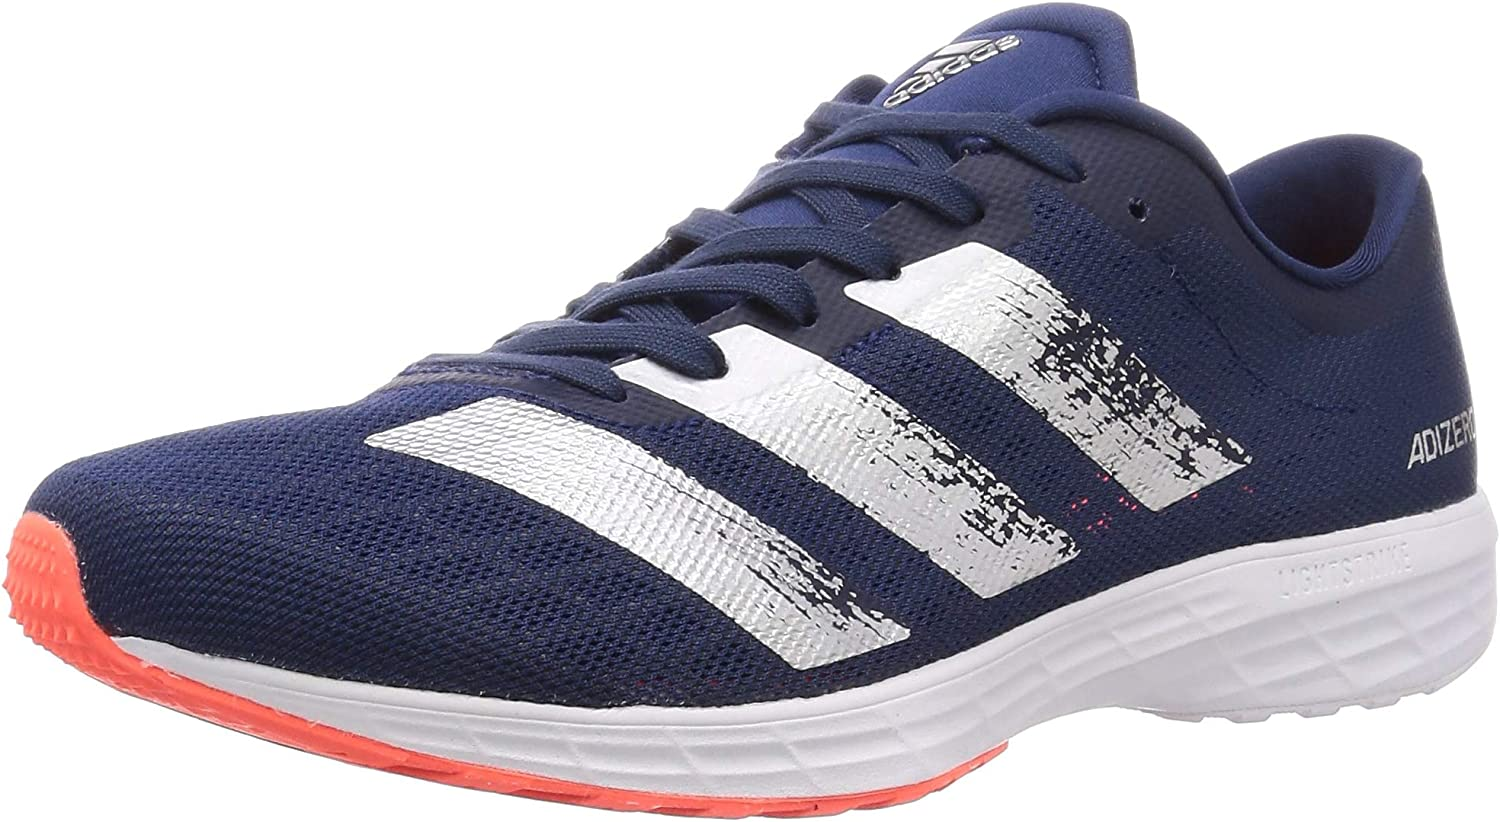 adidas Mens adizero RC 2 Running Shoes Trainers Sneakers Blue Sports